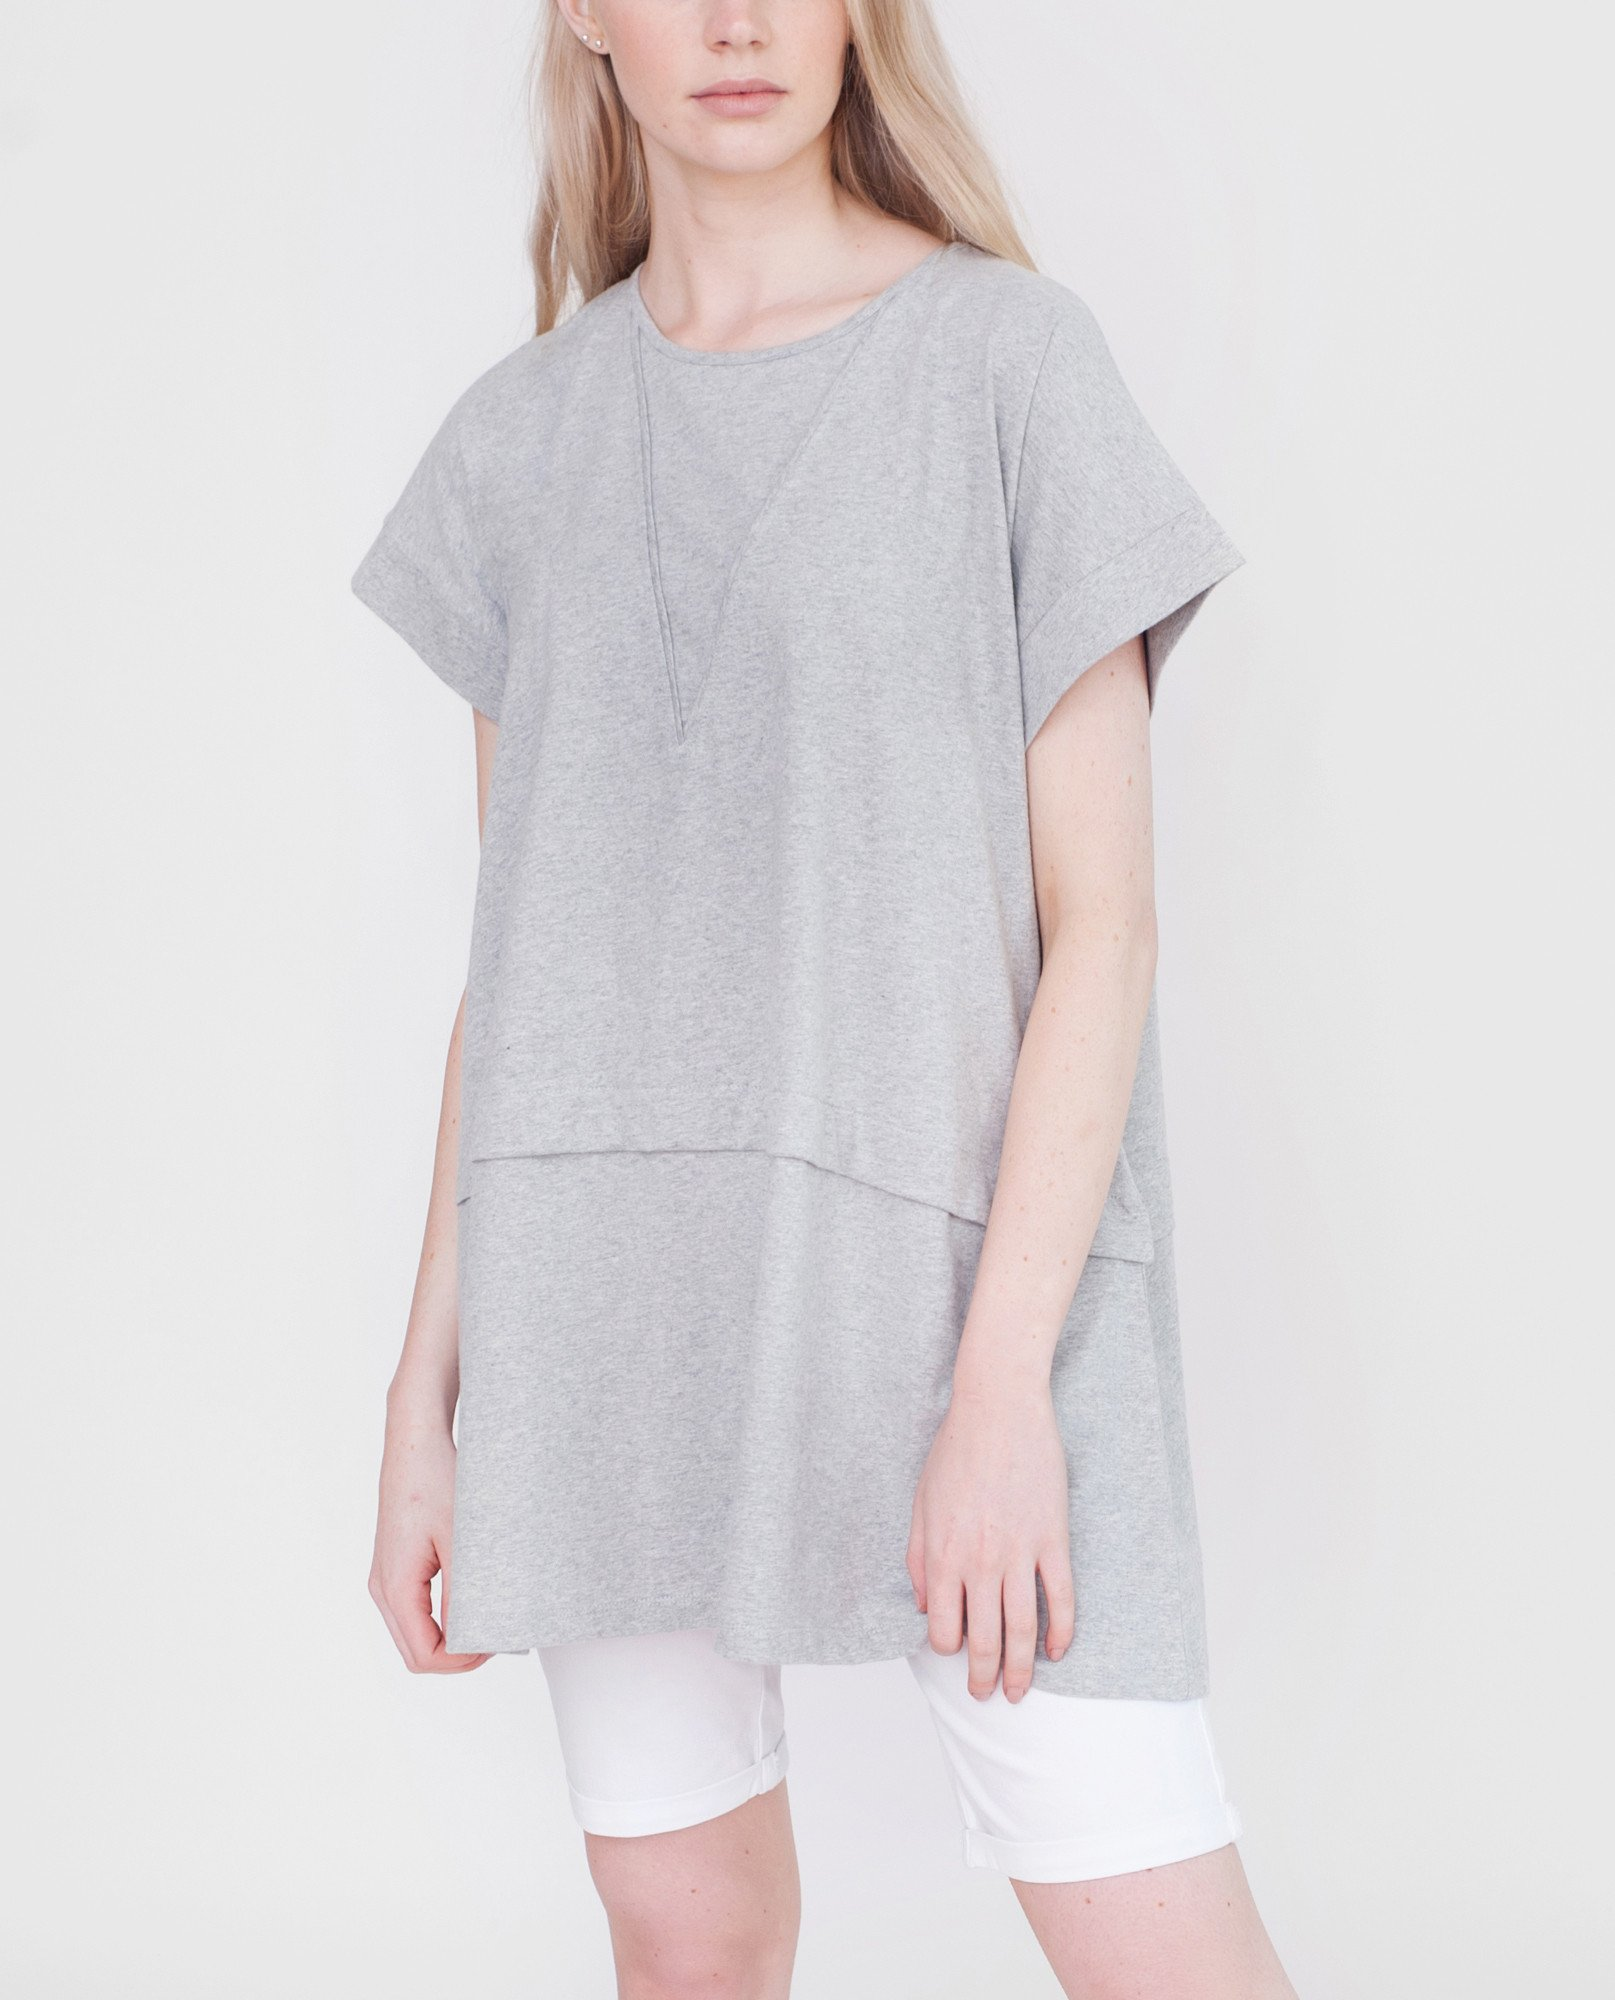 RILEY Organic Cotton Tunic Top from Beaumont Organic